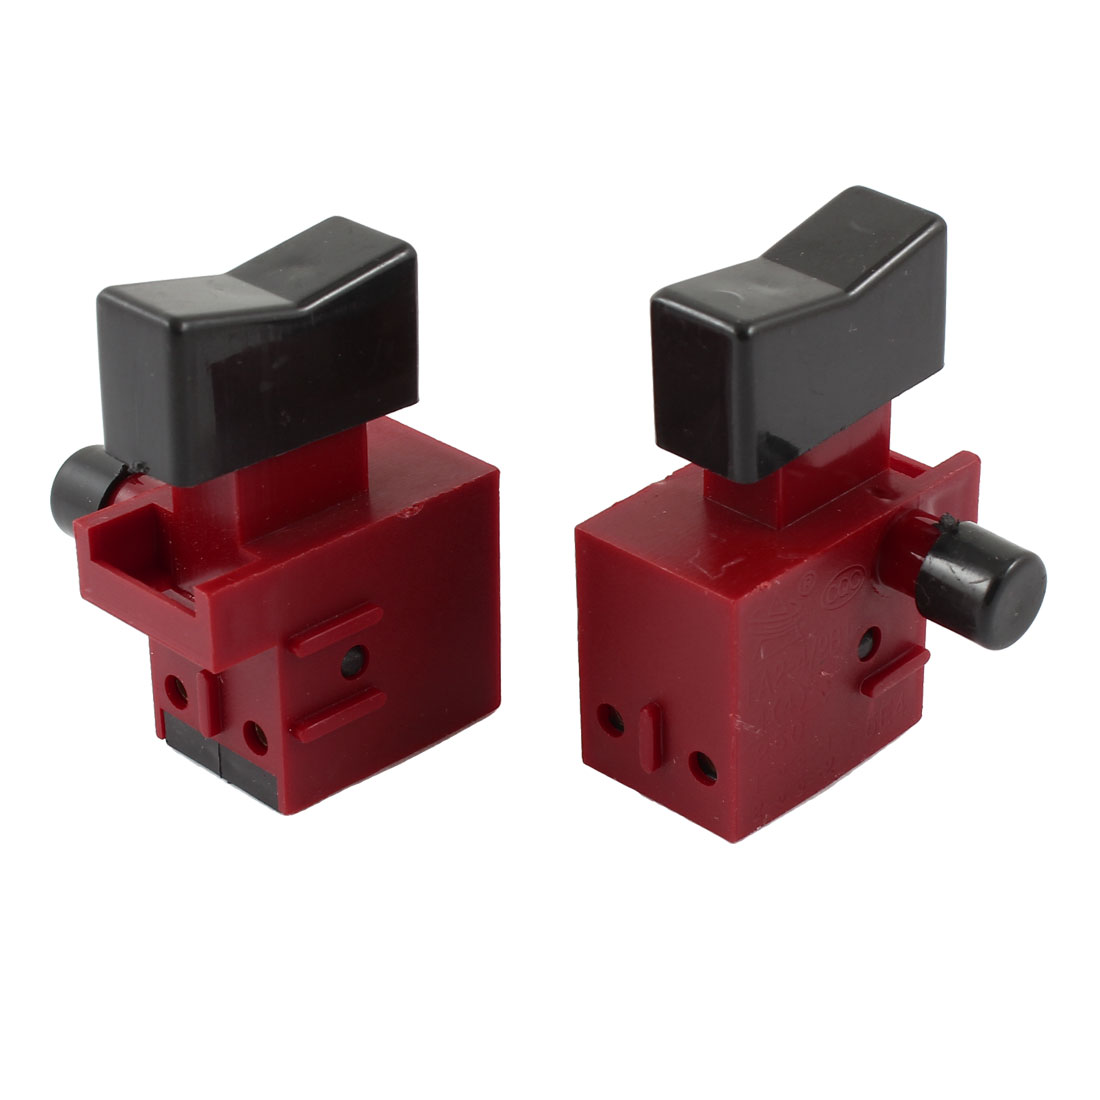 2 Pcs AC 250V 4A NO Momentary Select Locking Electric Tool Trigger Switch